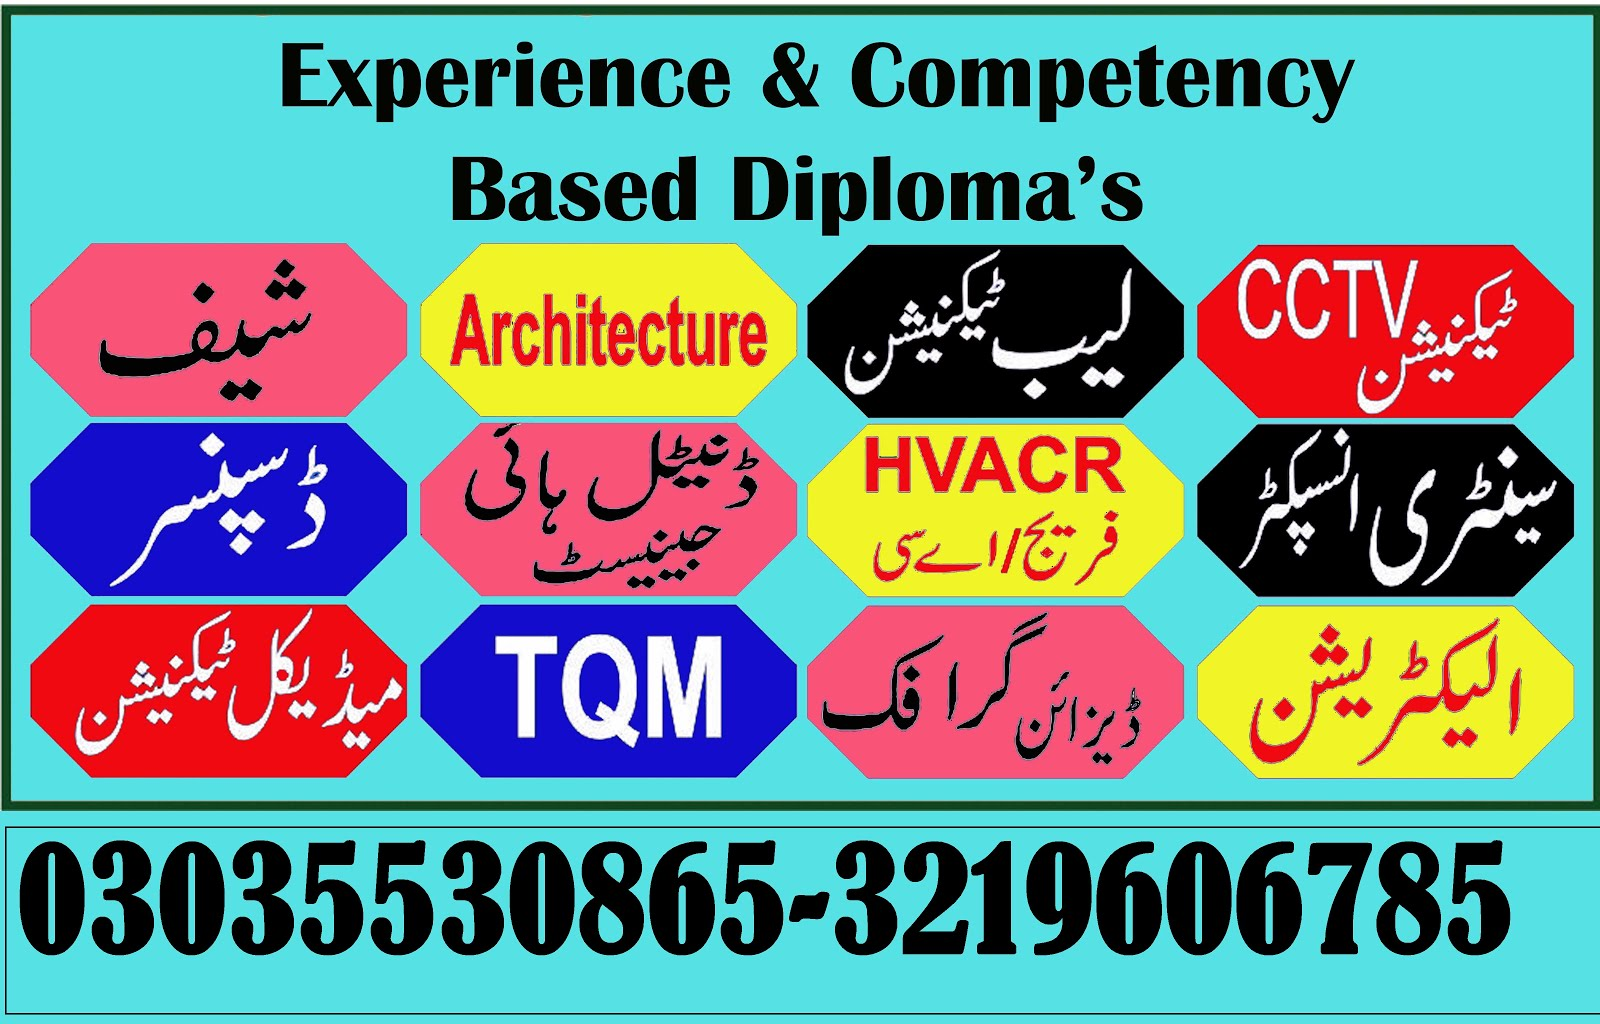 Civil Lab Technician Course in Rawalpindi, Civil Lab Technician o3035530865